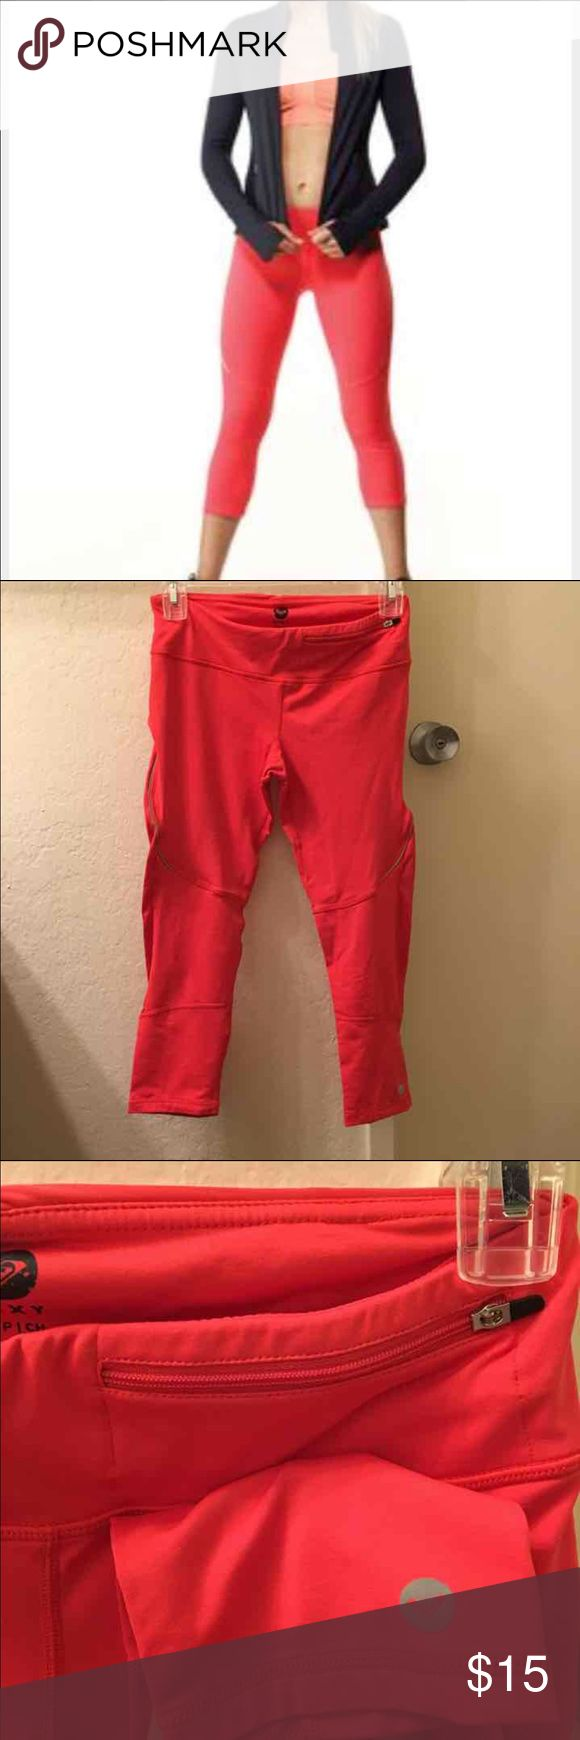 """Roxy coral Capri pants Coral color Capri work out pants. Features front pocket with zipper. Clinched back for a fitted look. Breathable material to wick away moisture. Worn one time to try on.   Size small. Length 27"""" inseam 20"""" Roxy Pants Track Pants & Joggers"""